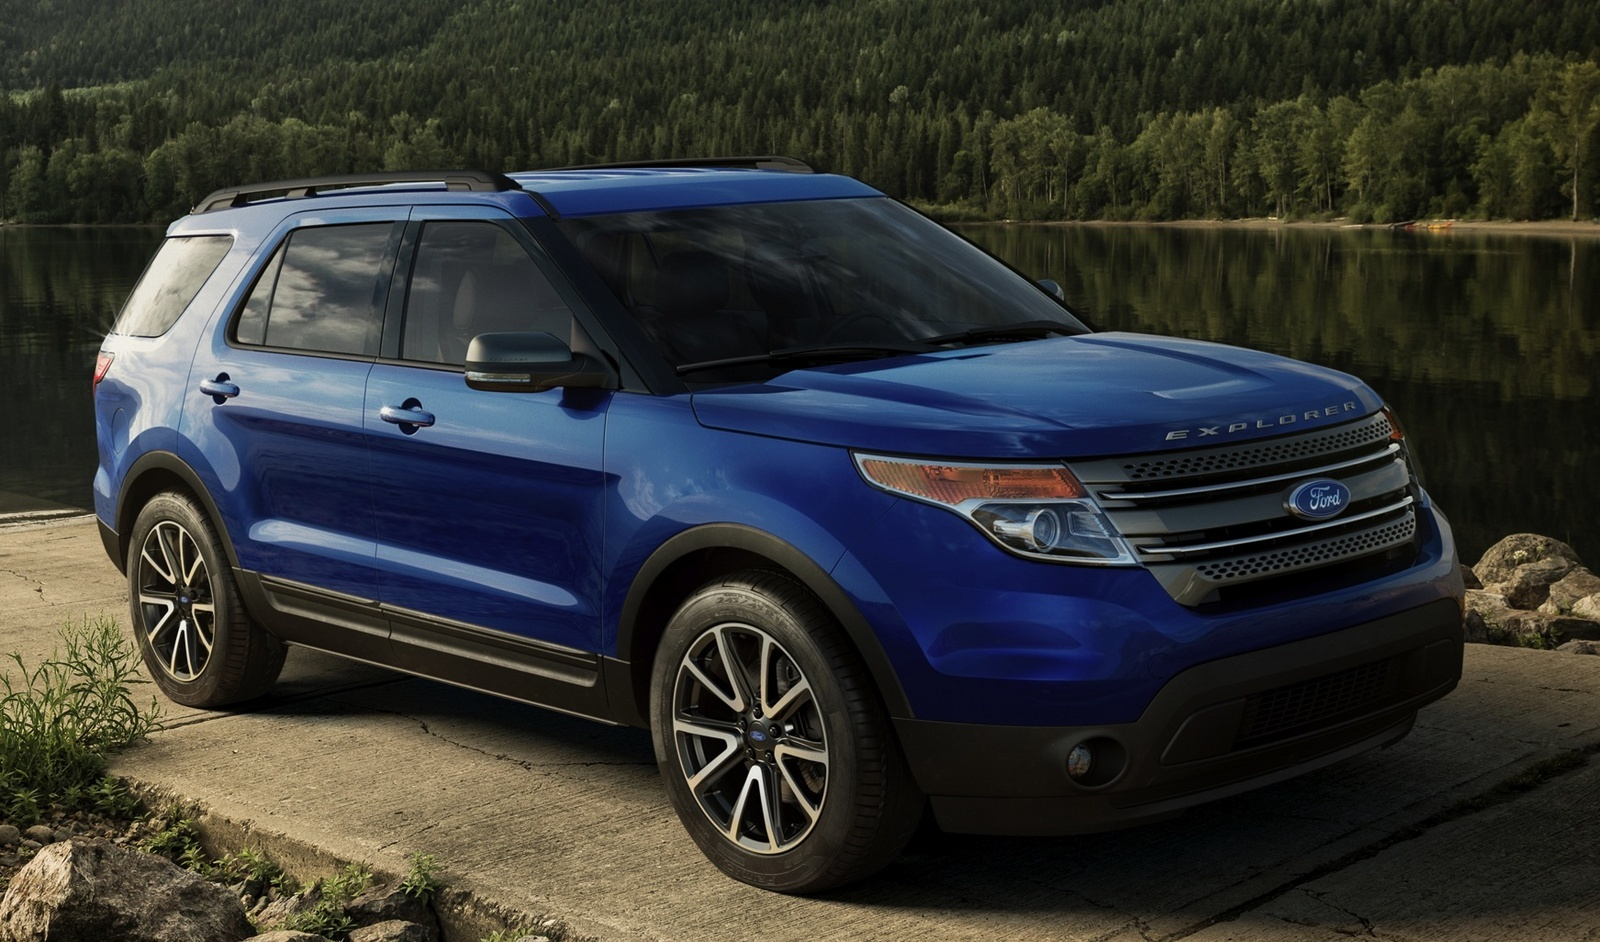 new 2015 2016 ford explorer for sale cargurus. Black Bedroom Furniture Sets. Home Design Ideas